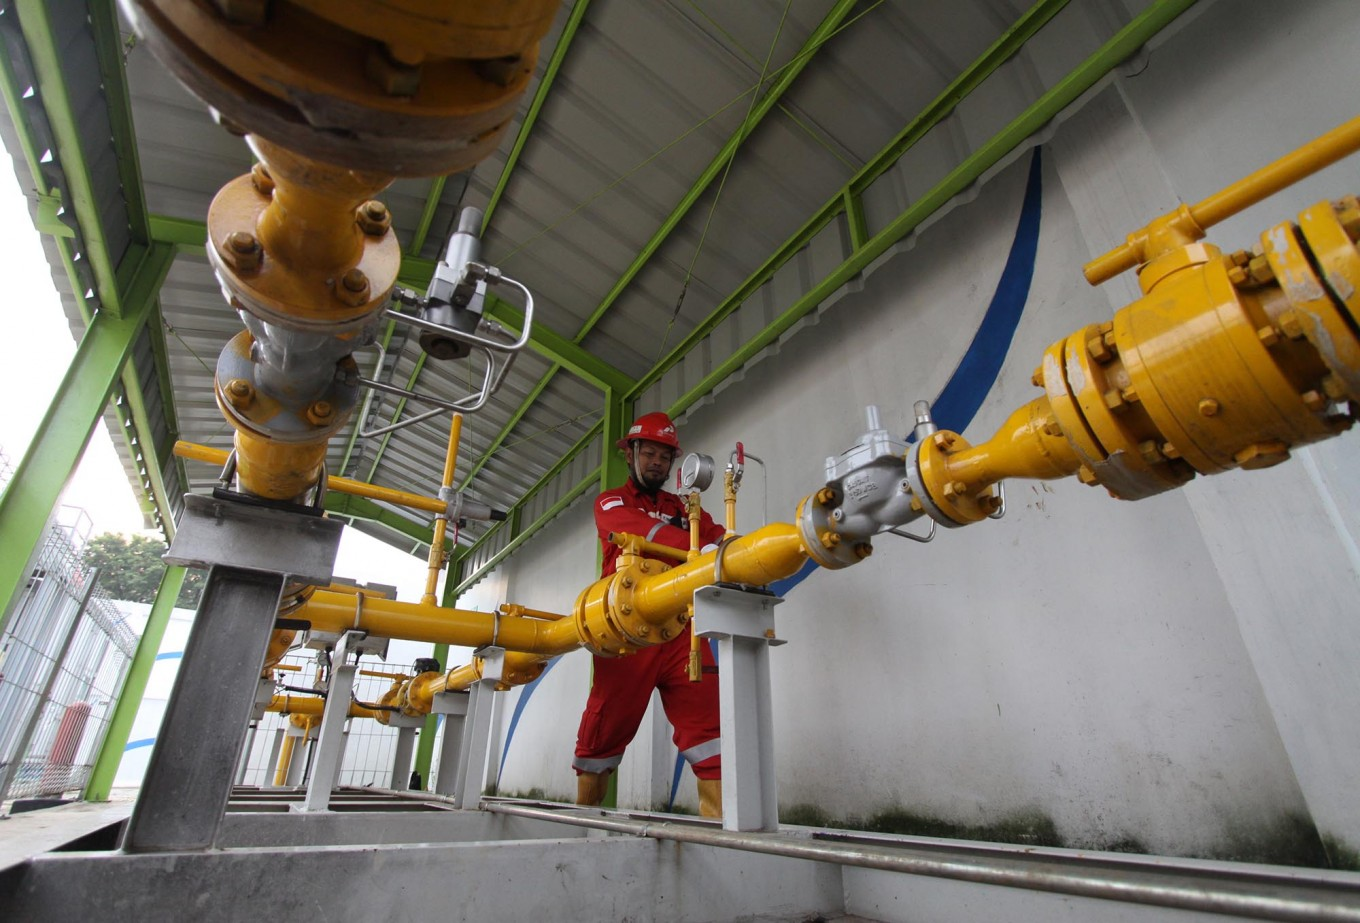 Minister inaugurates gas network to serve 24,000 households in Surabaya